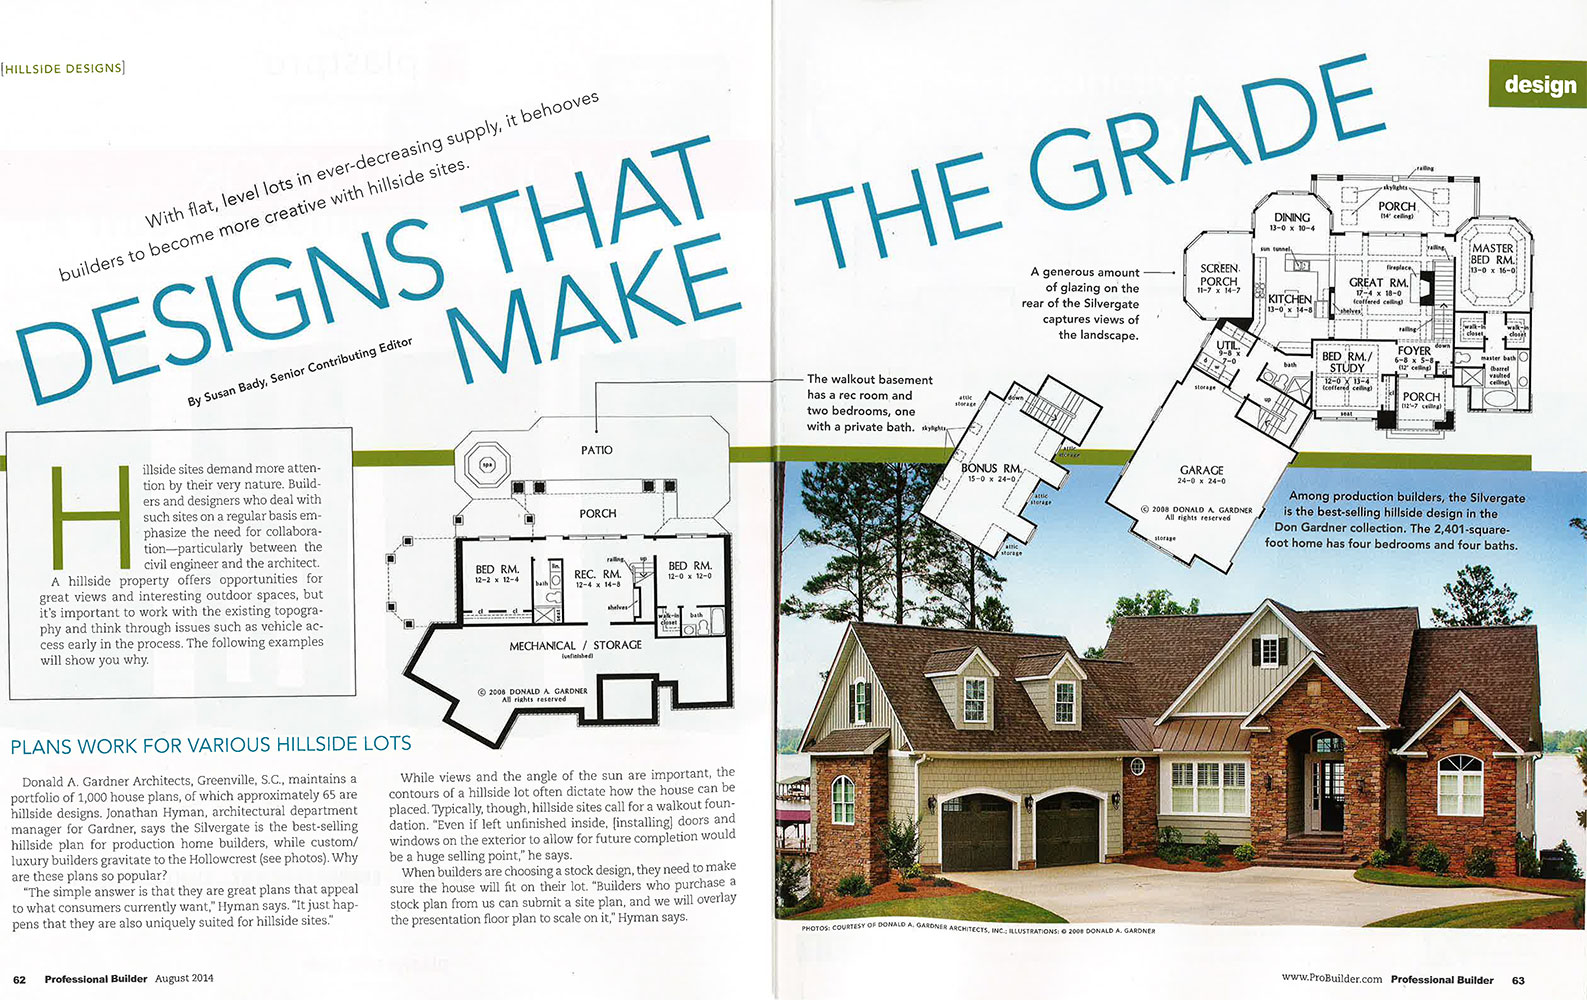 Home Designs: Making the Grade - Professional Builder Magazine